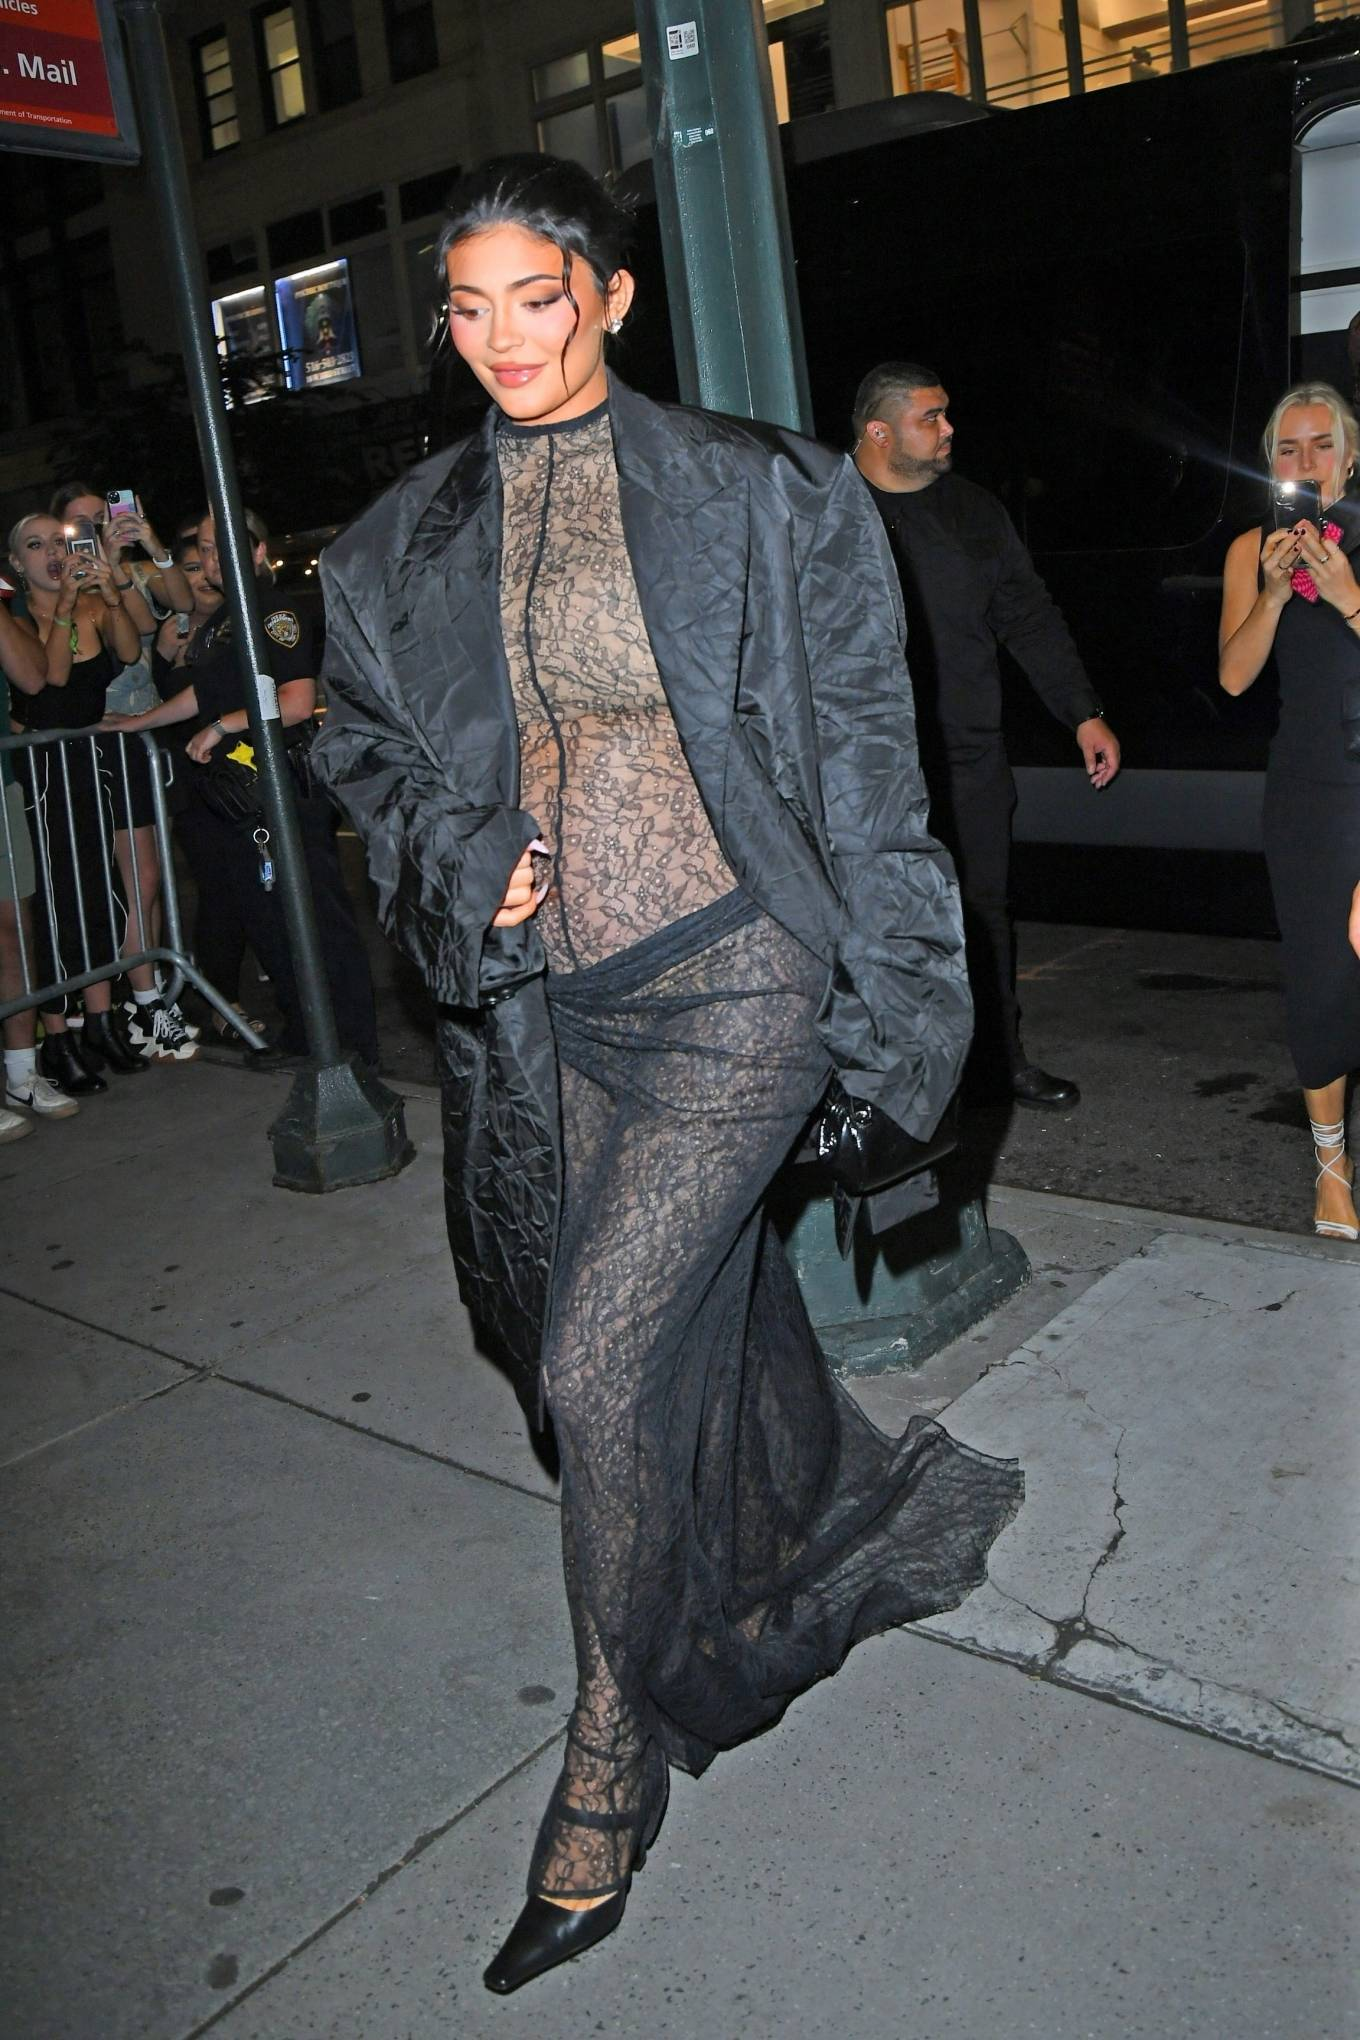 Kylie Jenner rocking a oversized black blazer with extra long sleeves, lapel collar and crushed material detailing